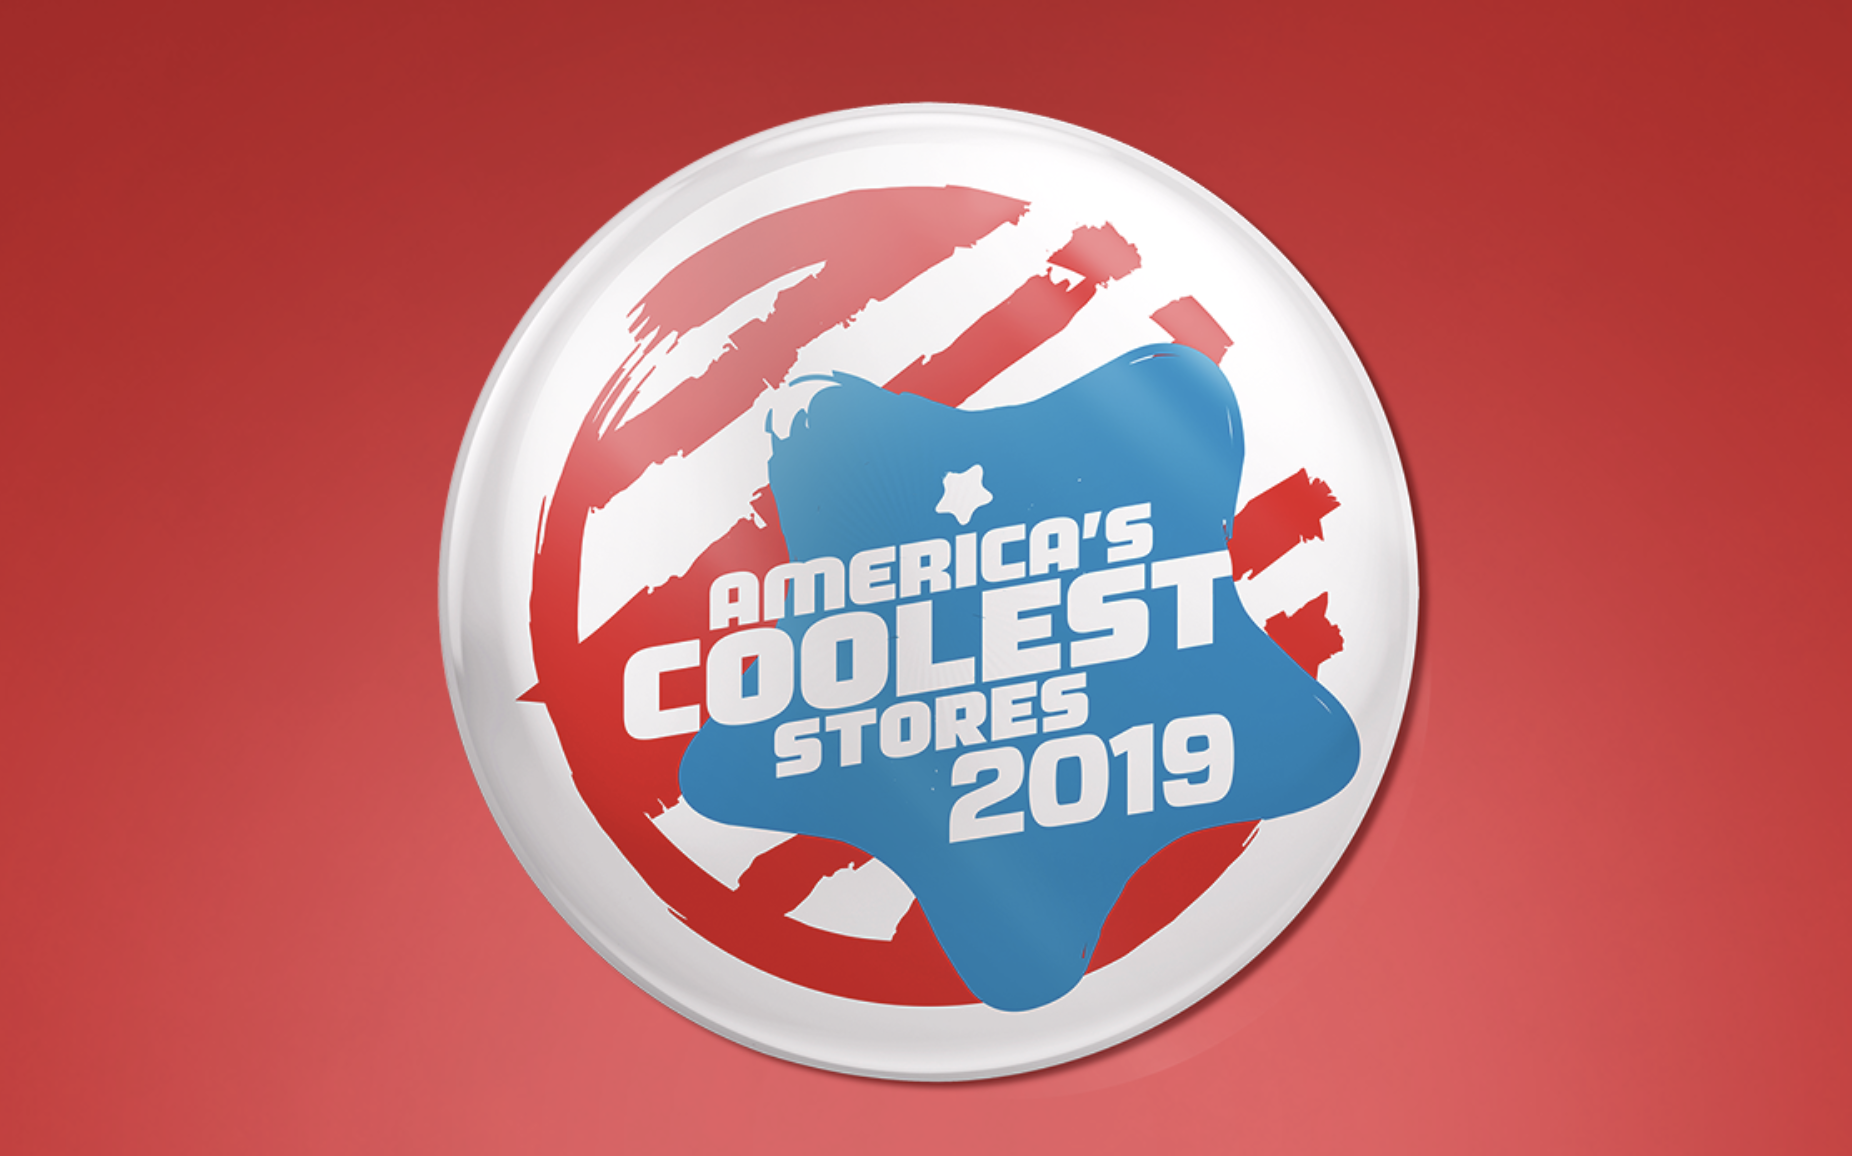 Meet the Judges of The 2019 America's Coolest Stores Contest